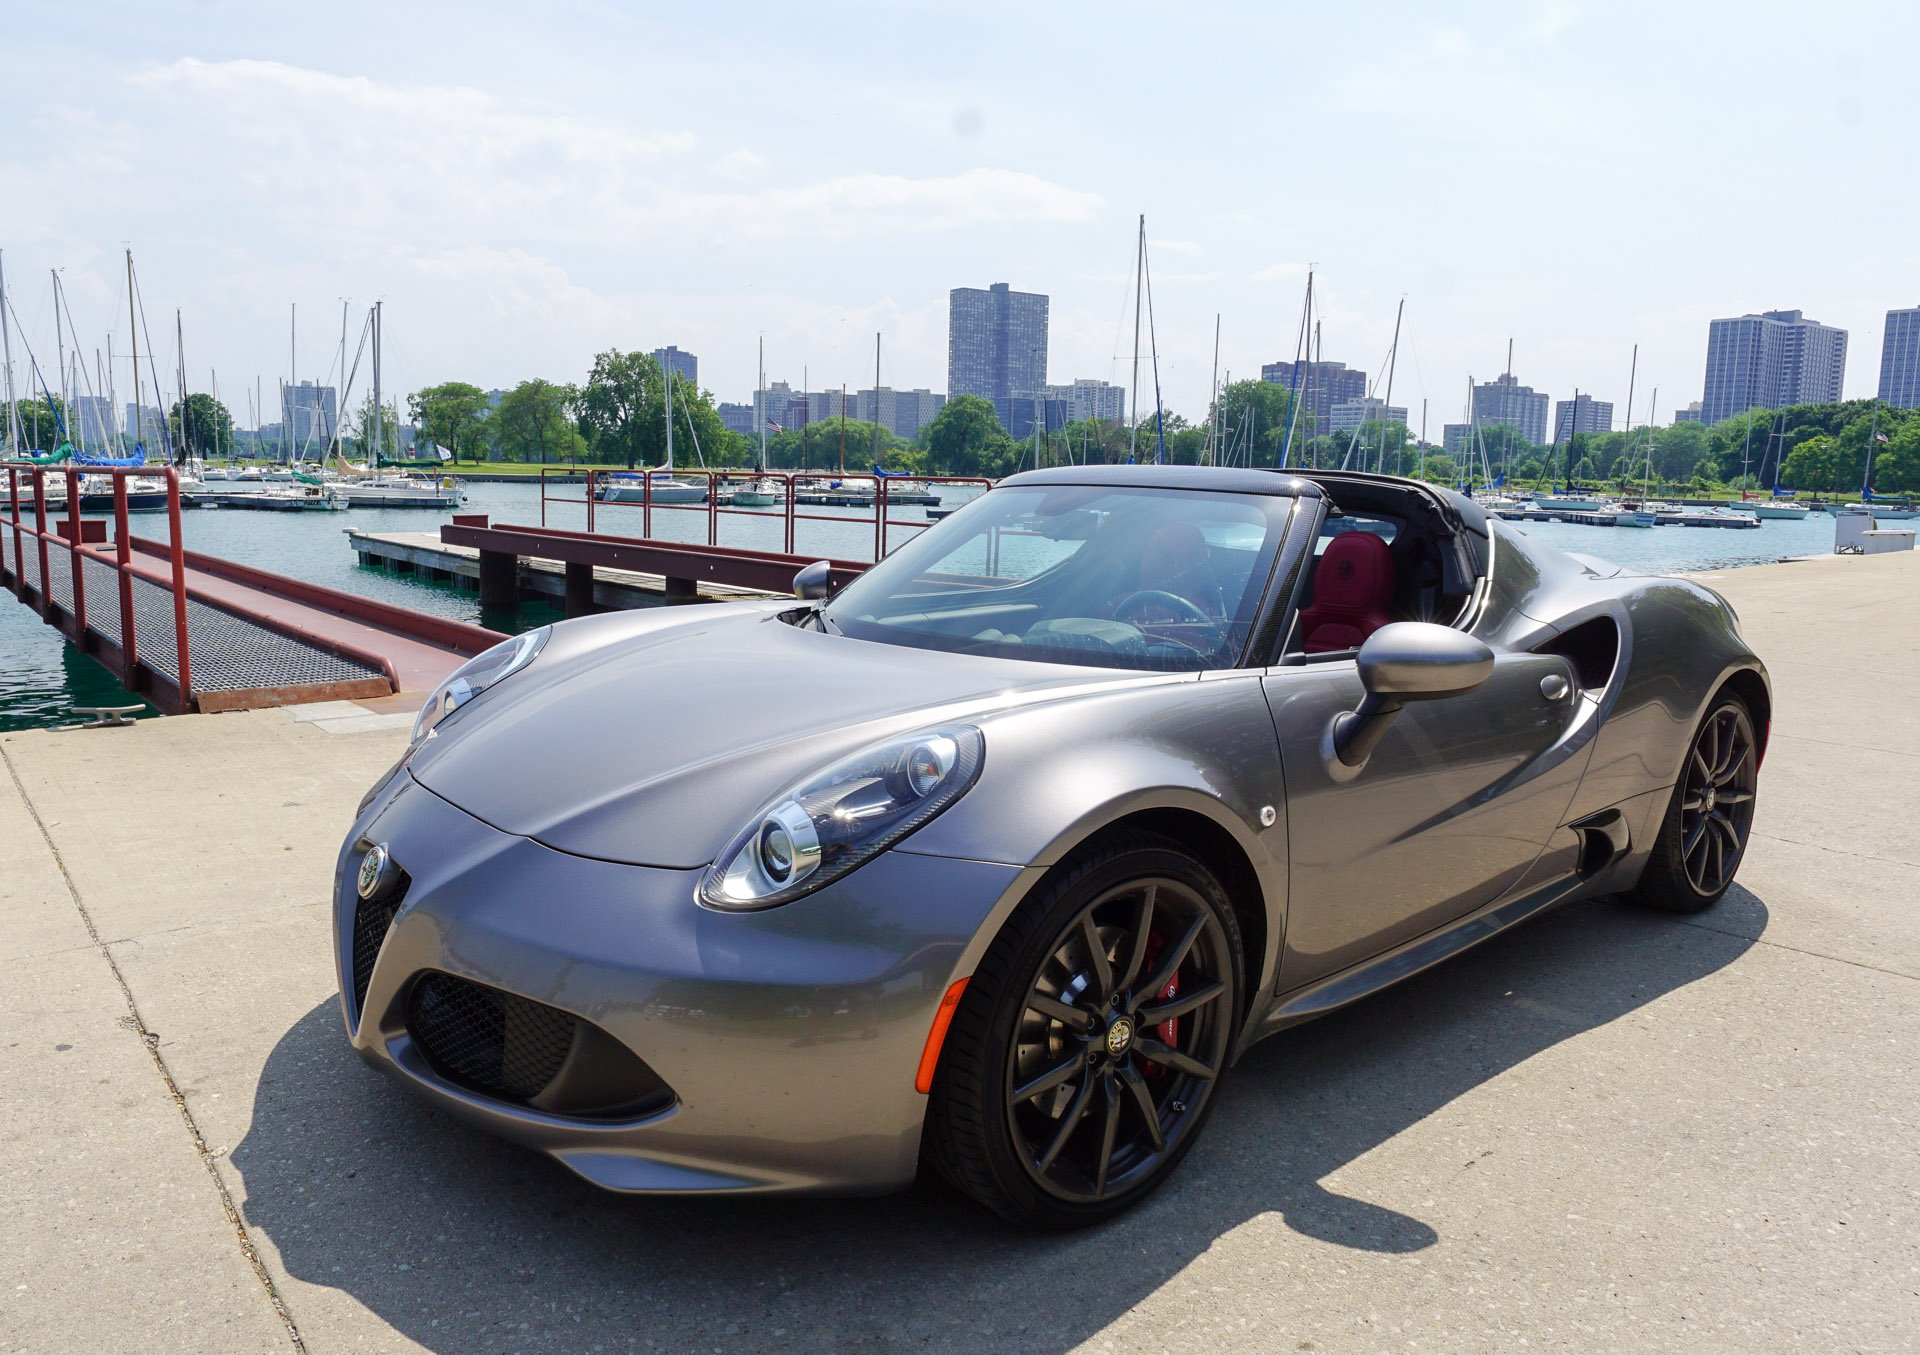 Alfa Romeo 4C Spider Review: A Tiny Monster